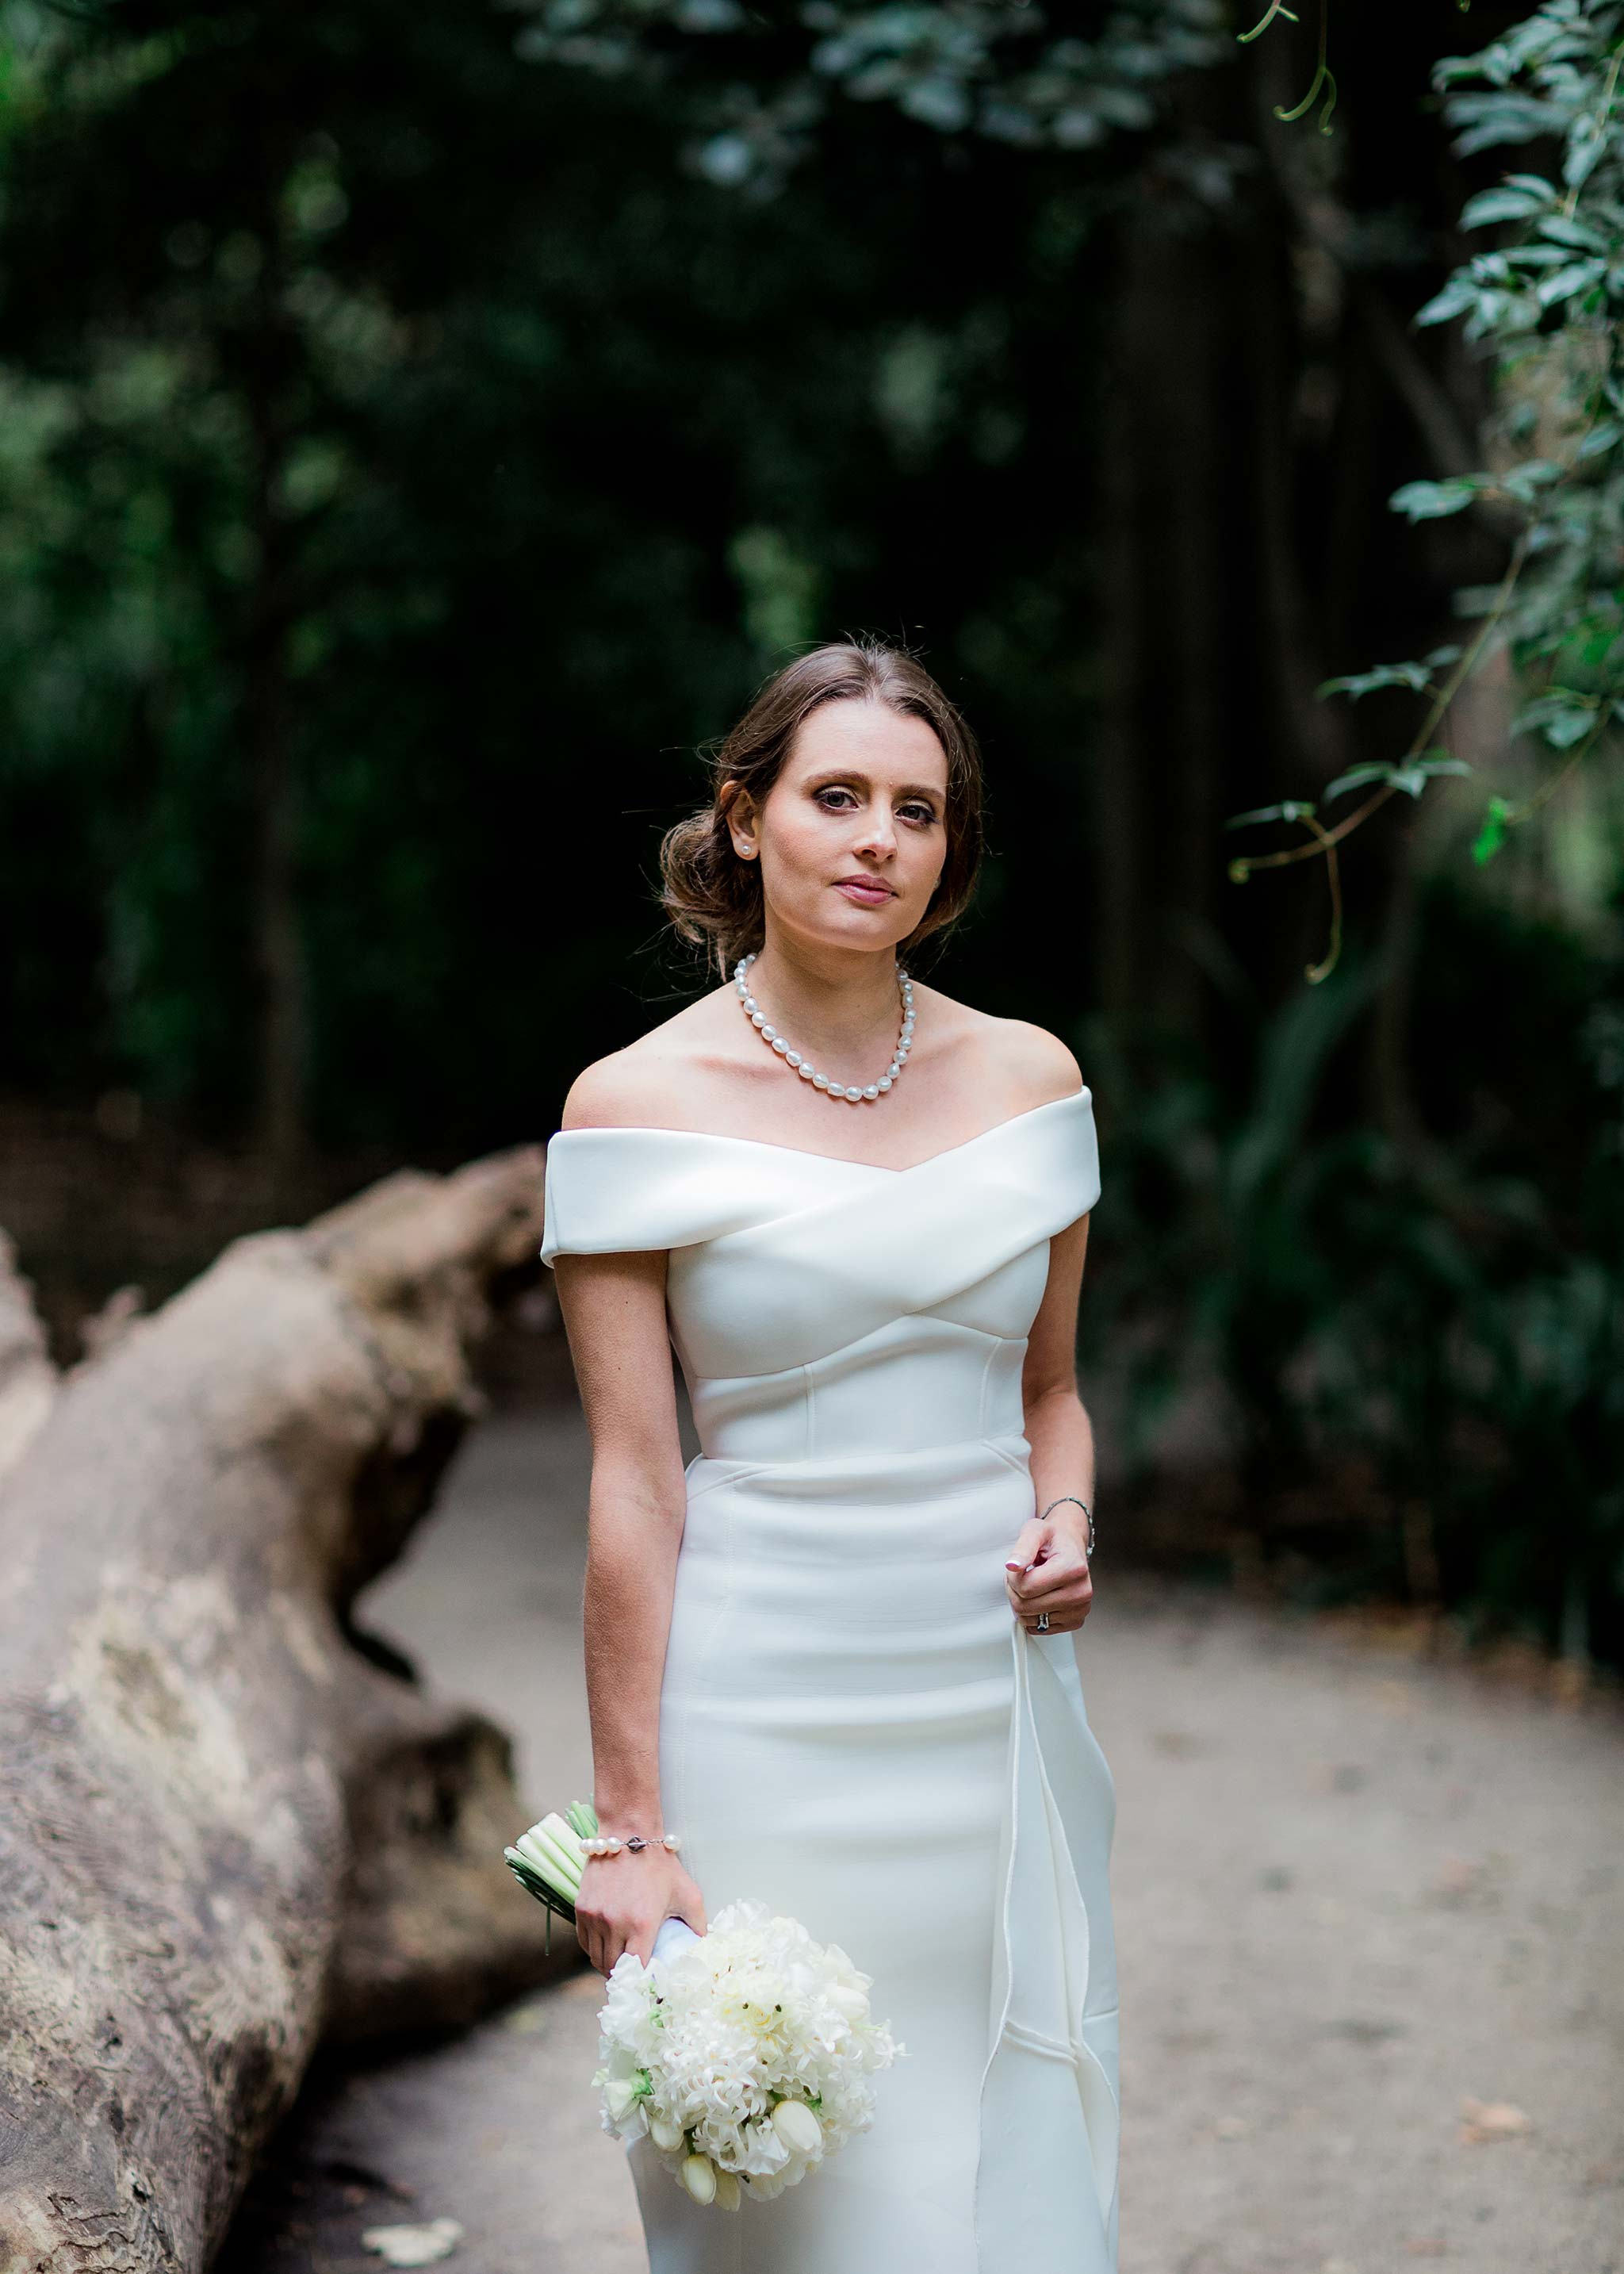 melbourne-royal-botanical-garden-bride-elegant-dress